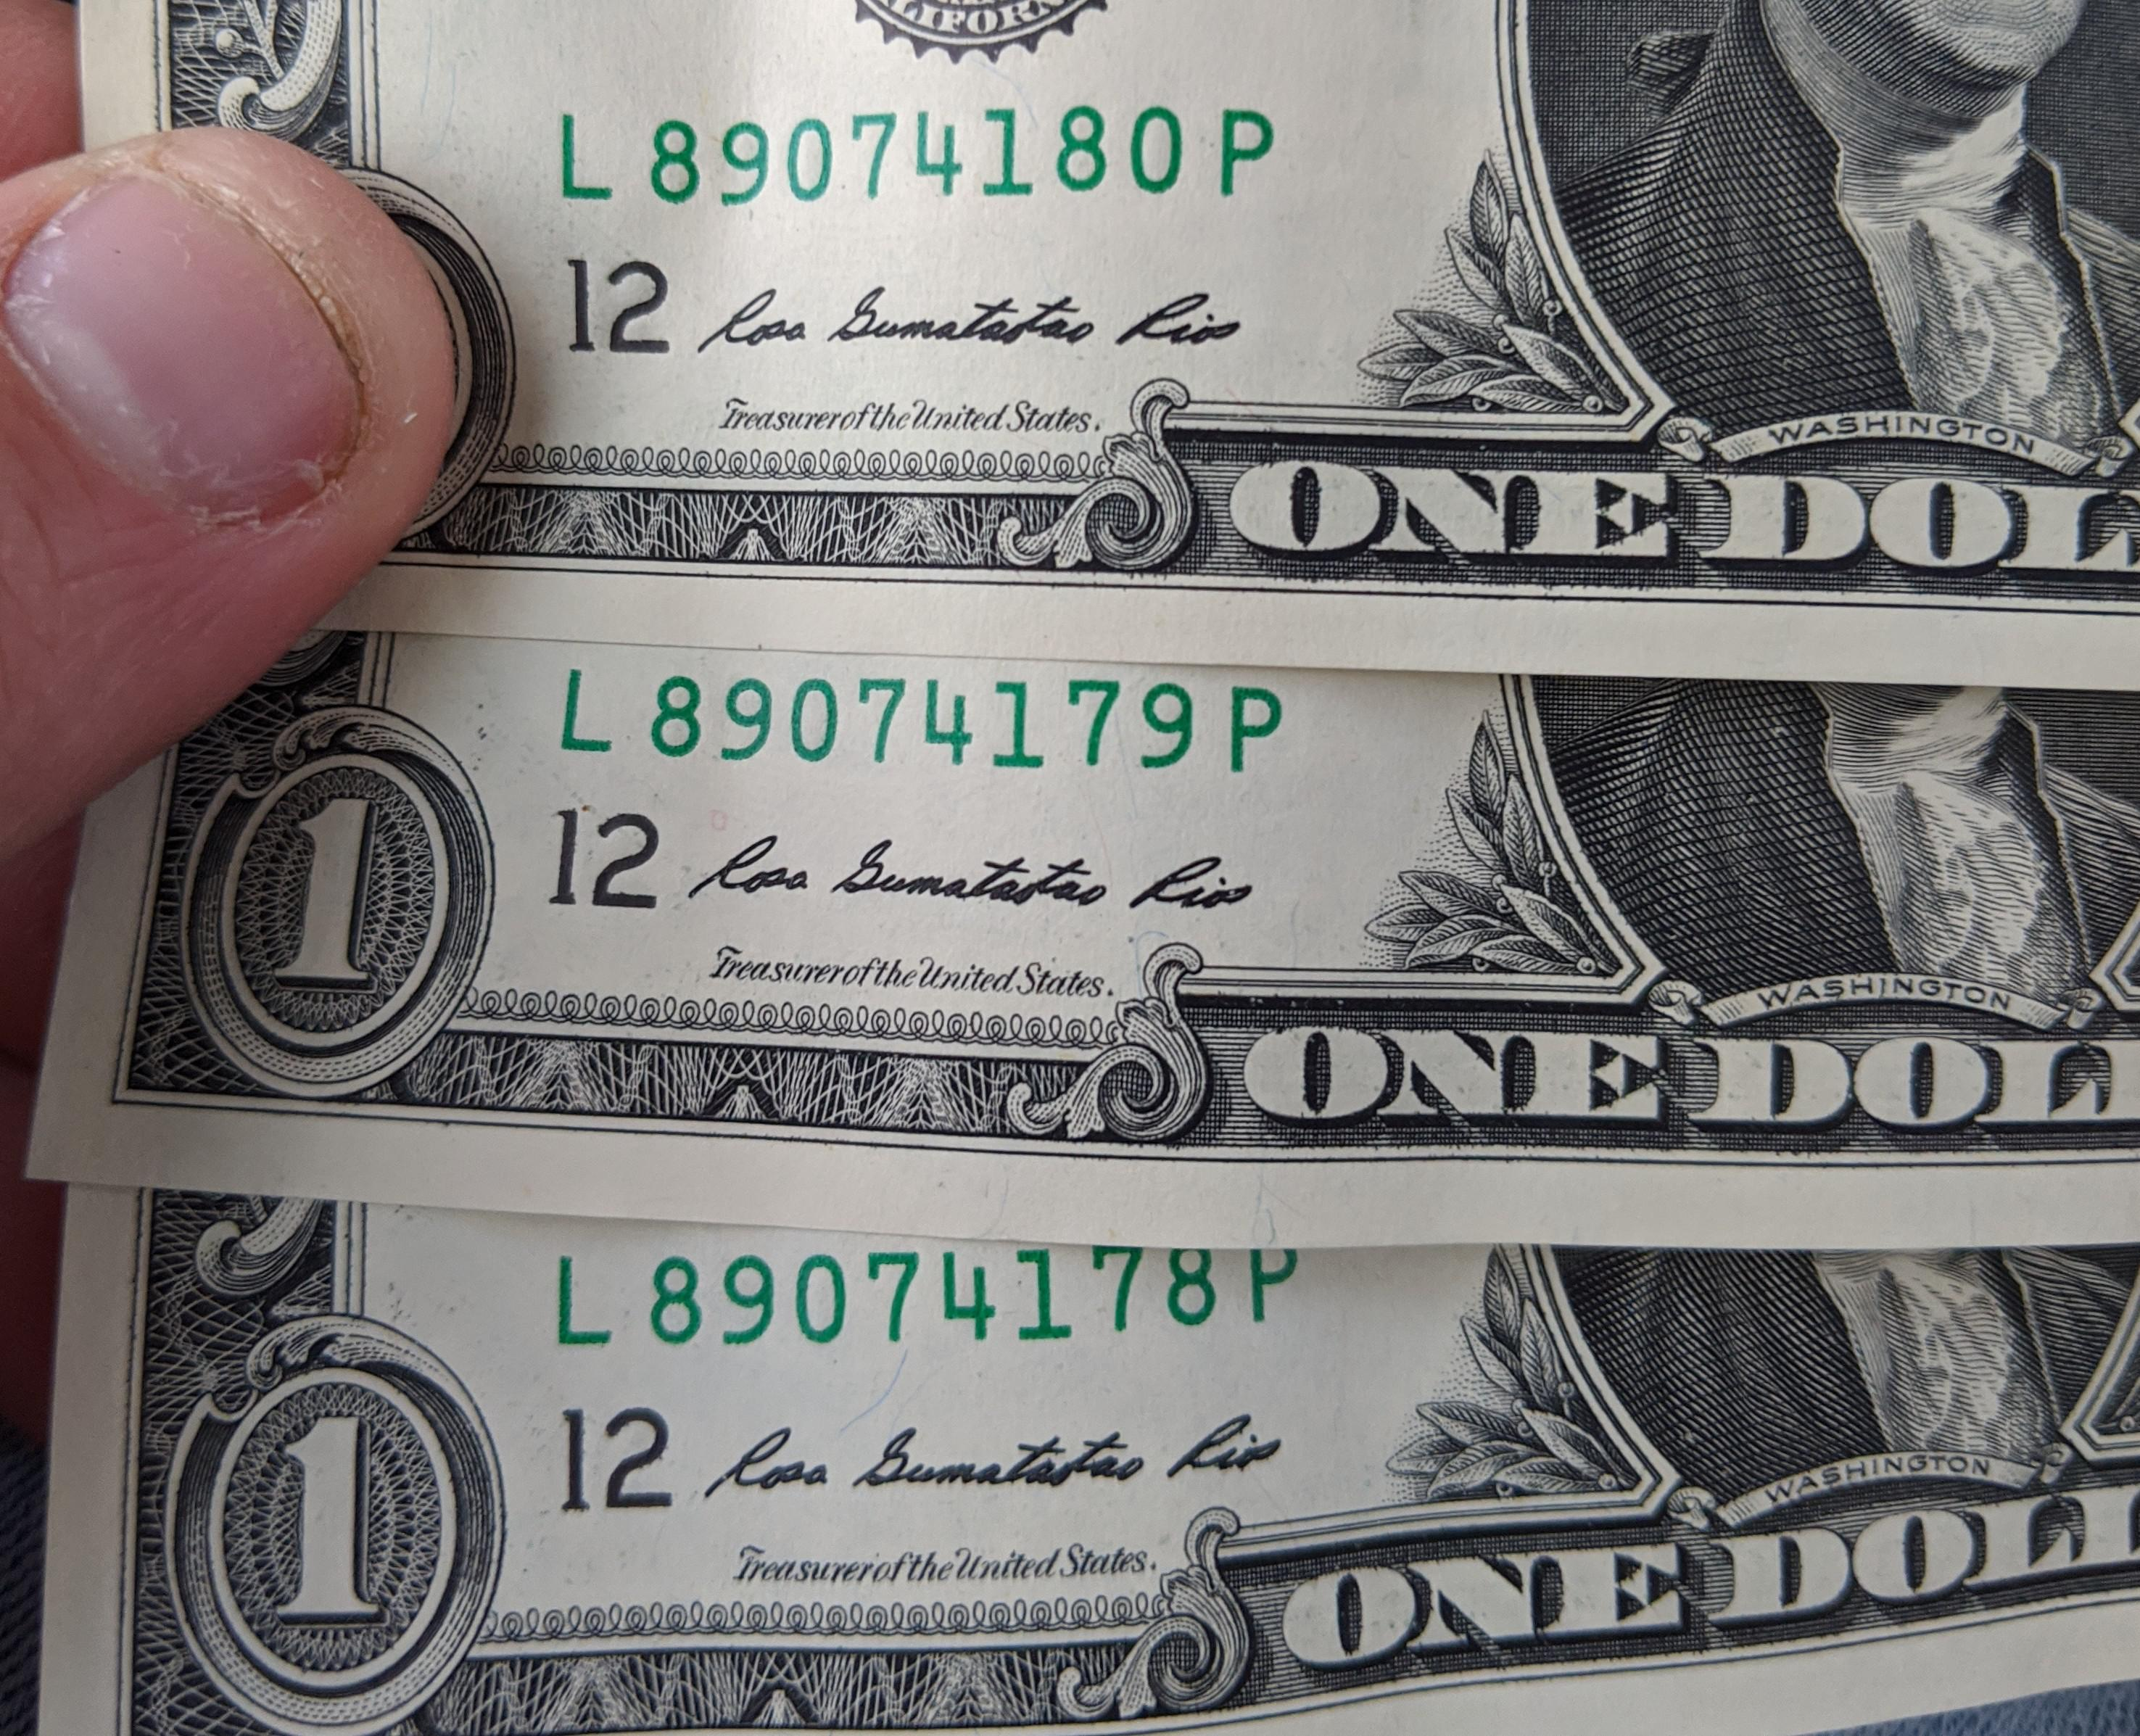 I Have Three One Dollar Bills With Serial Numbers In